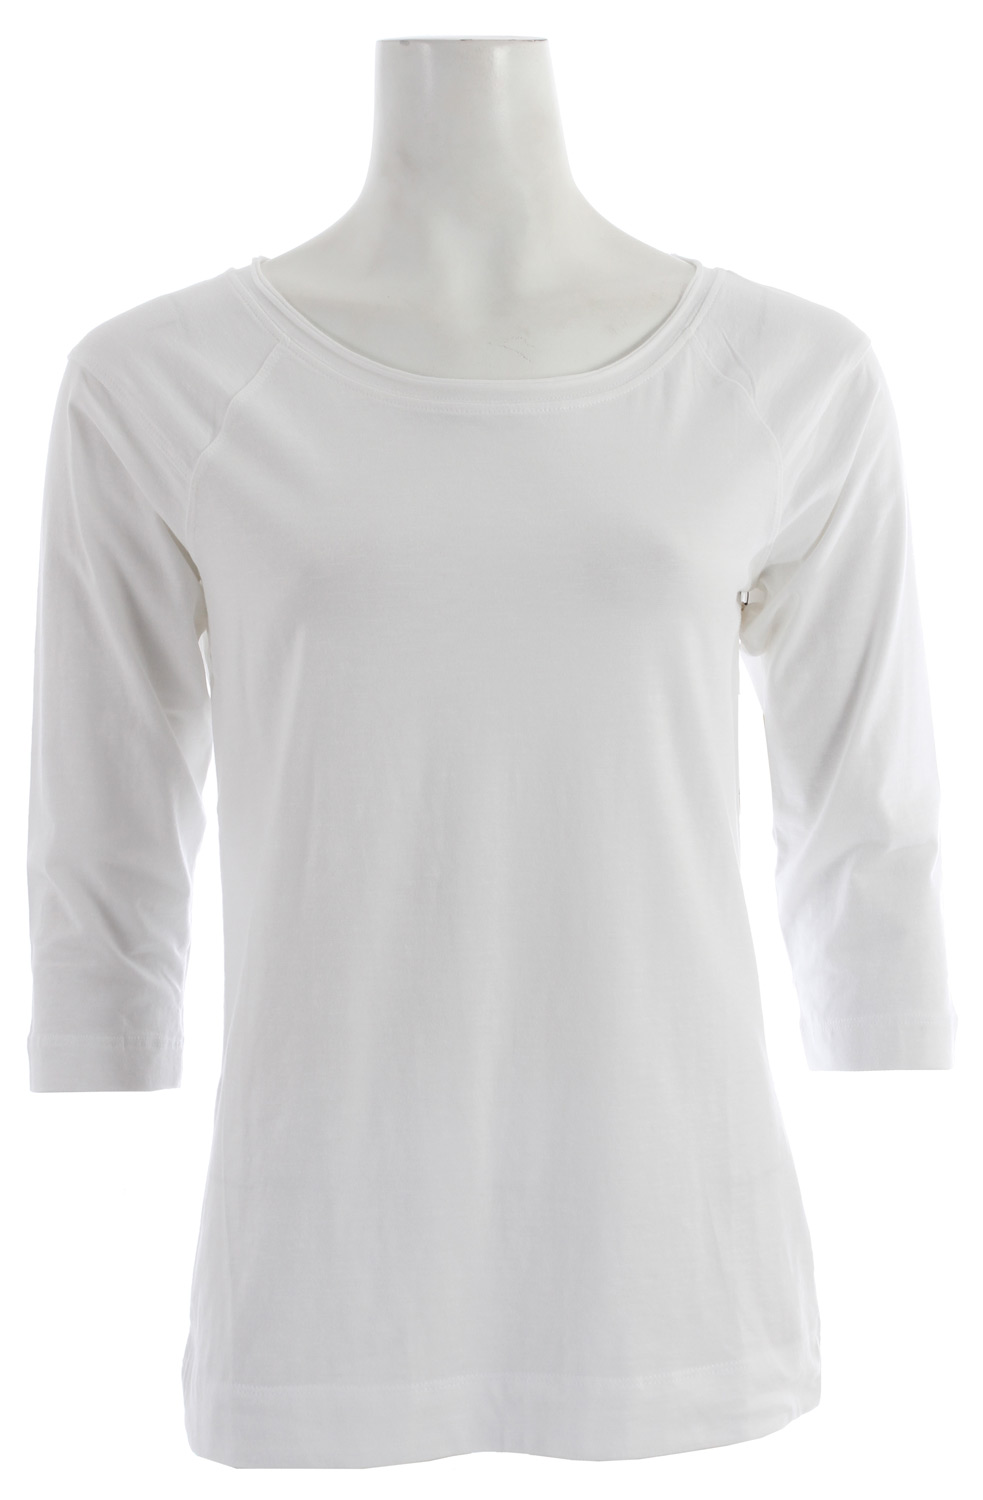 Toad & Co Rollick 3/4 Shirt White - $32.95